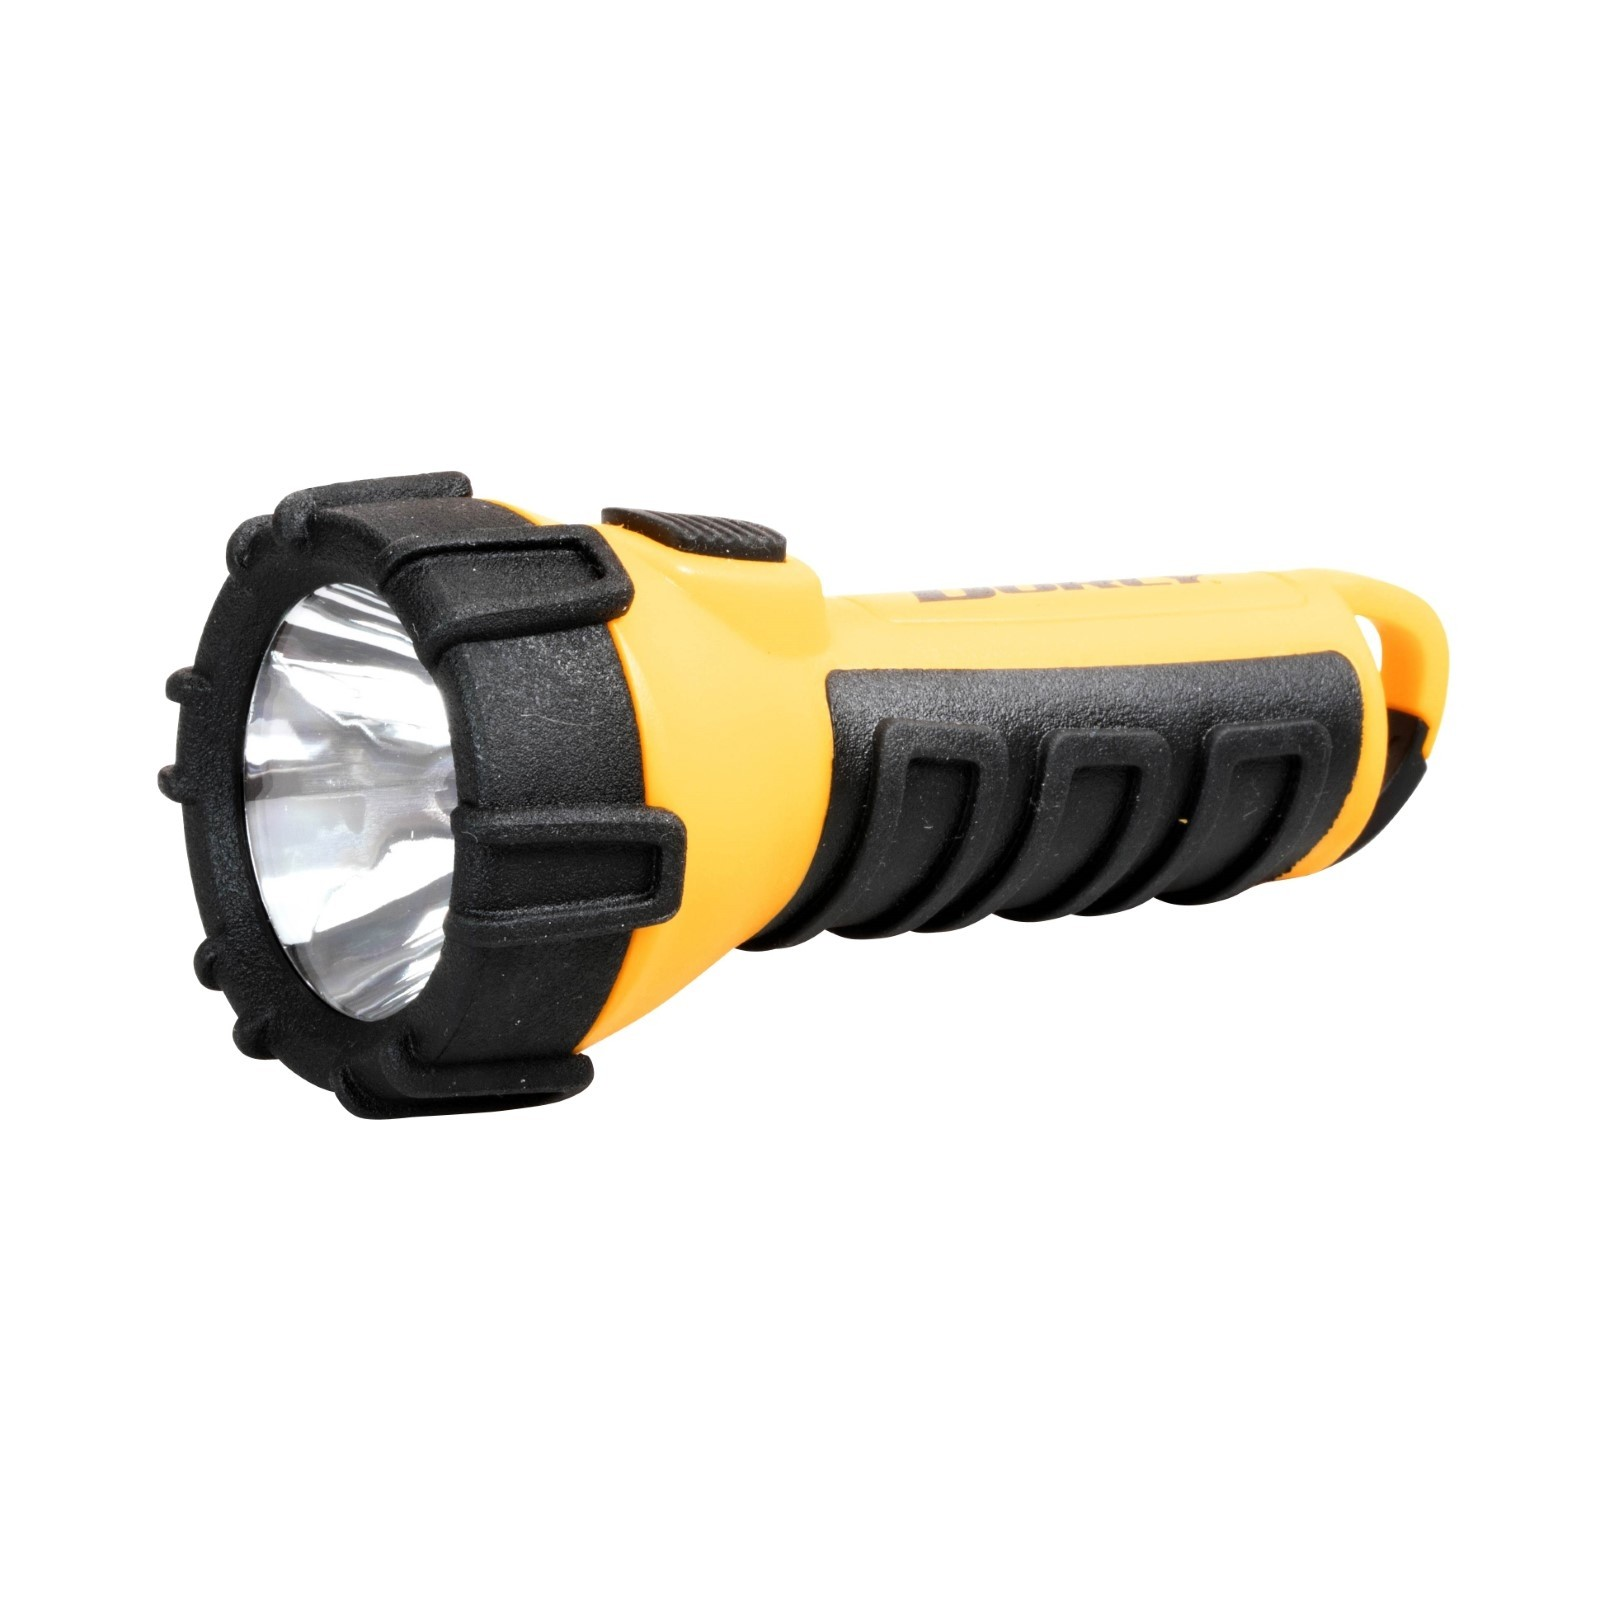 125 Lumen Compact Floating Flashlight